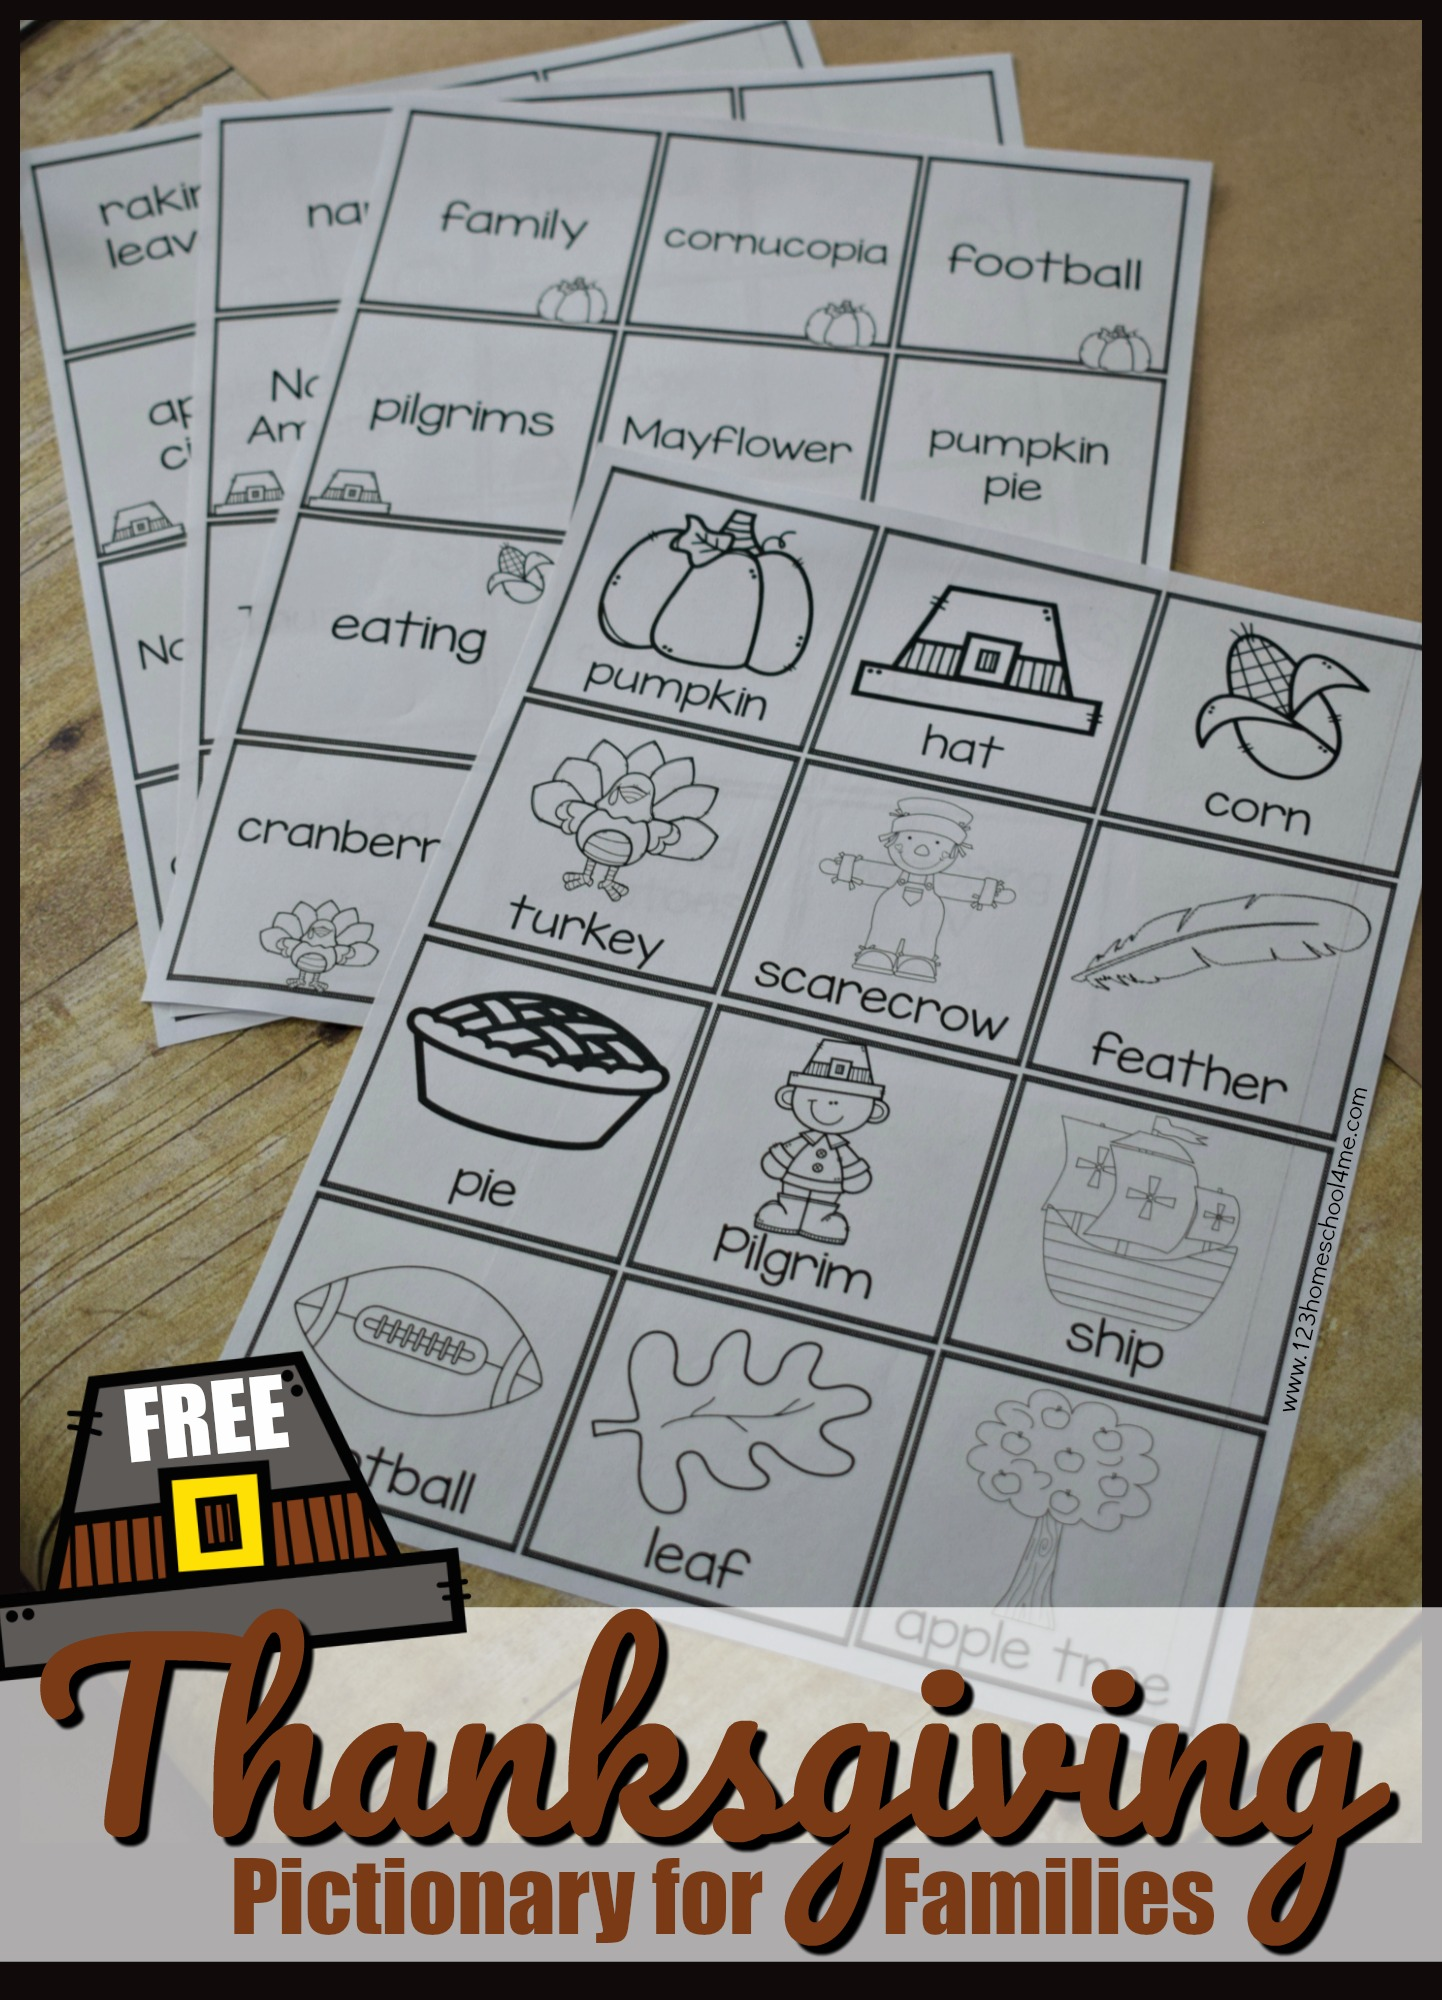 free-thanksgiving-pictionary-for-families